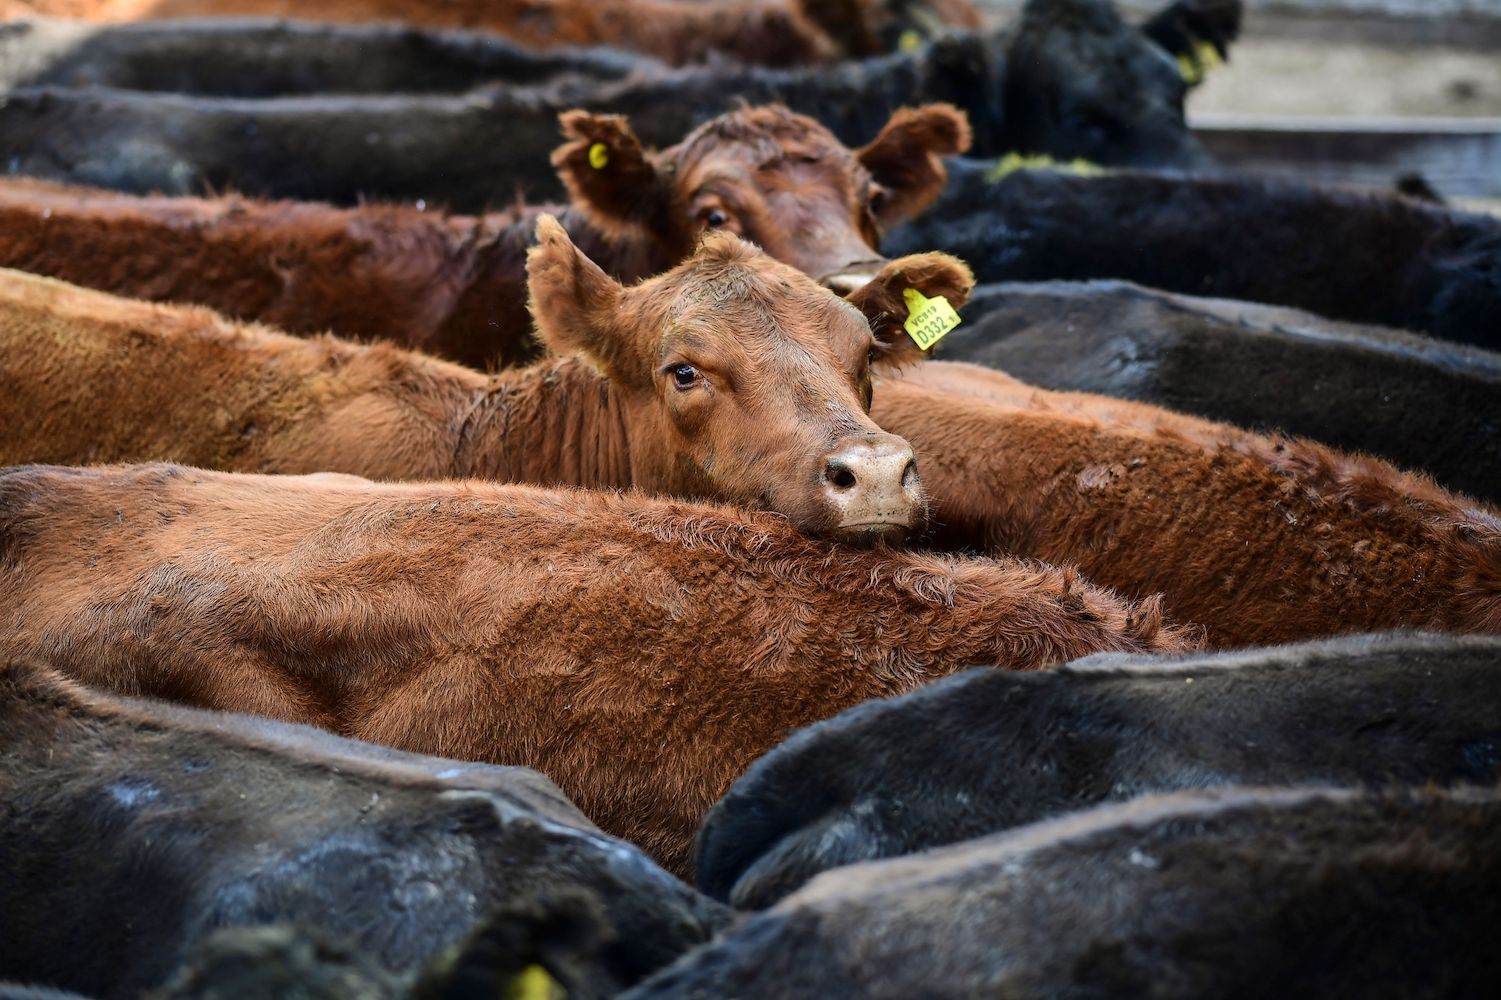 Cows are seen at Liniers Market in Buenos Aires, Argentina on May 18.